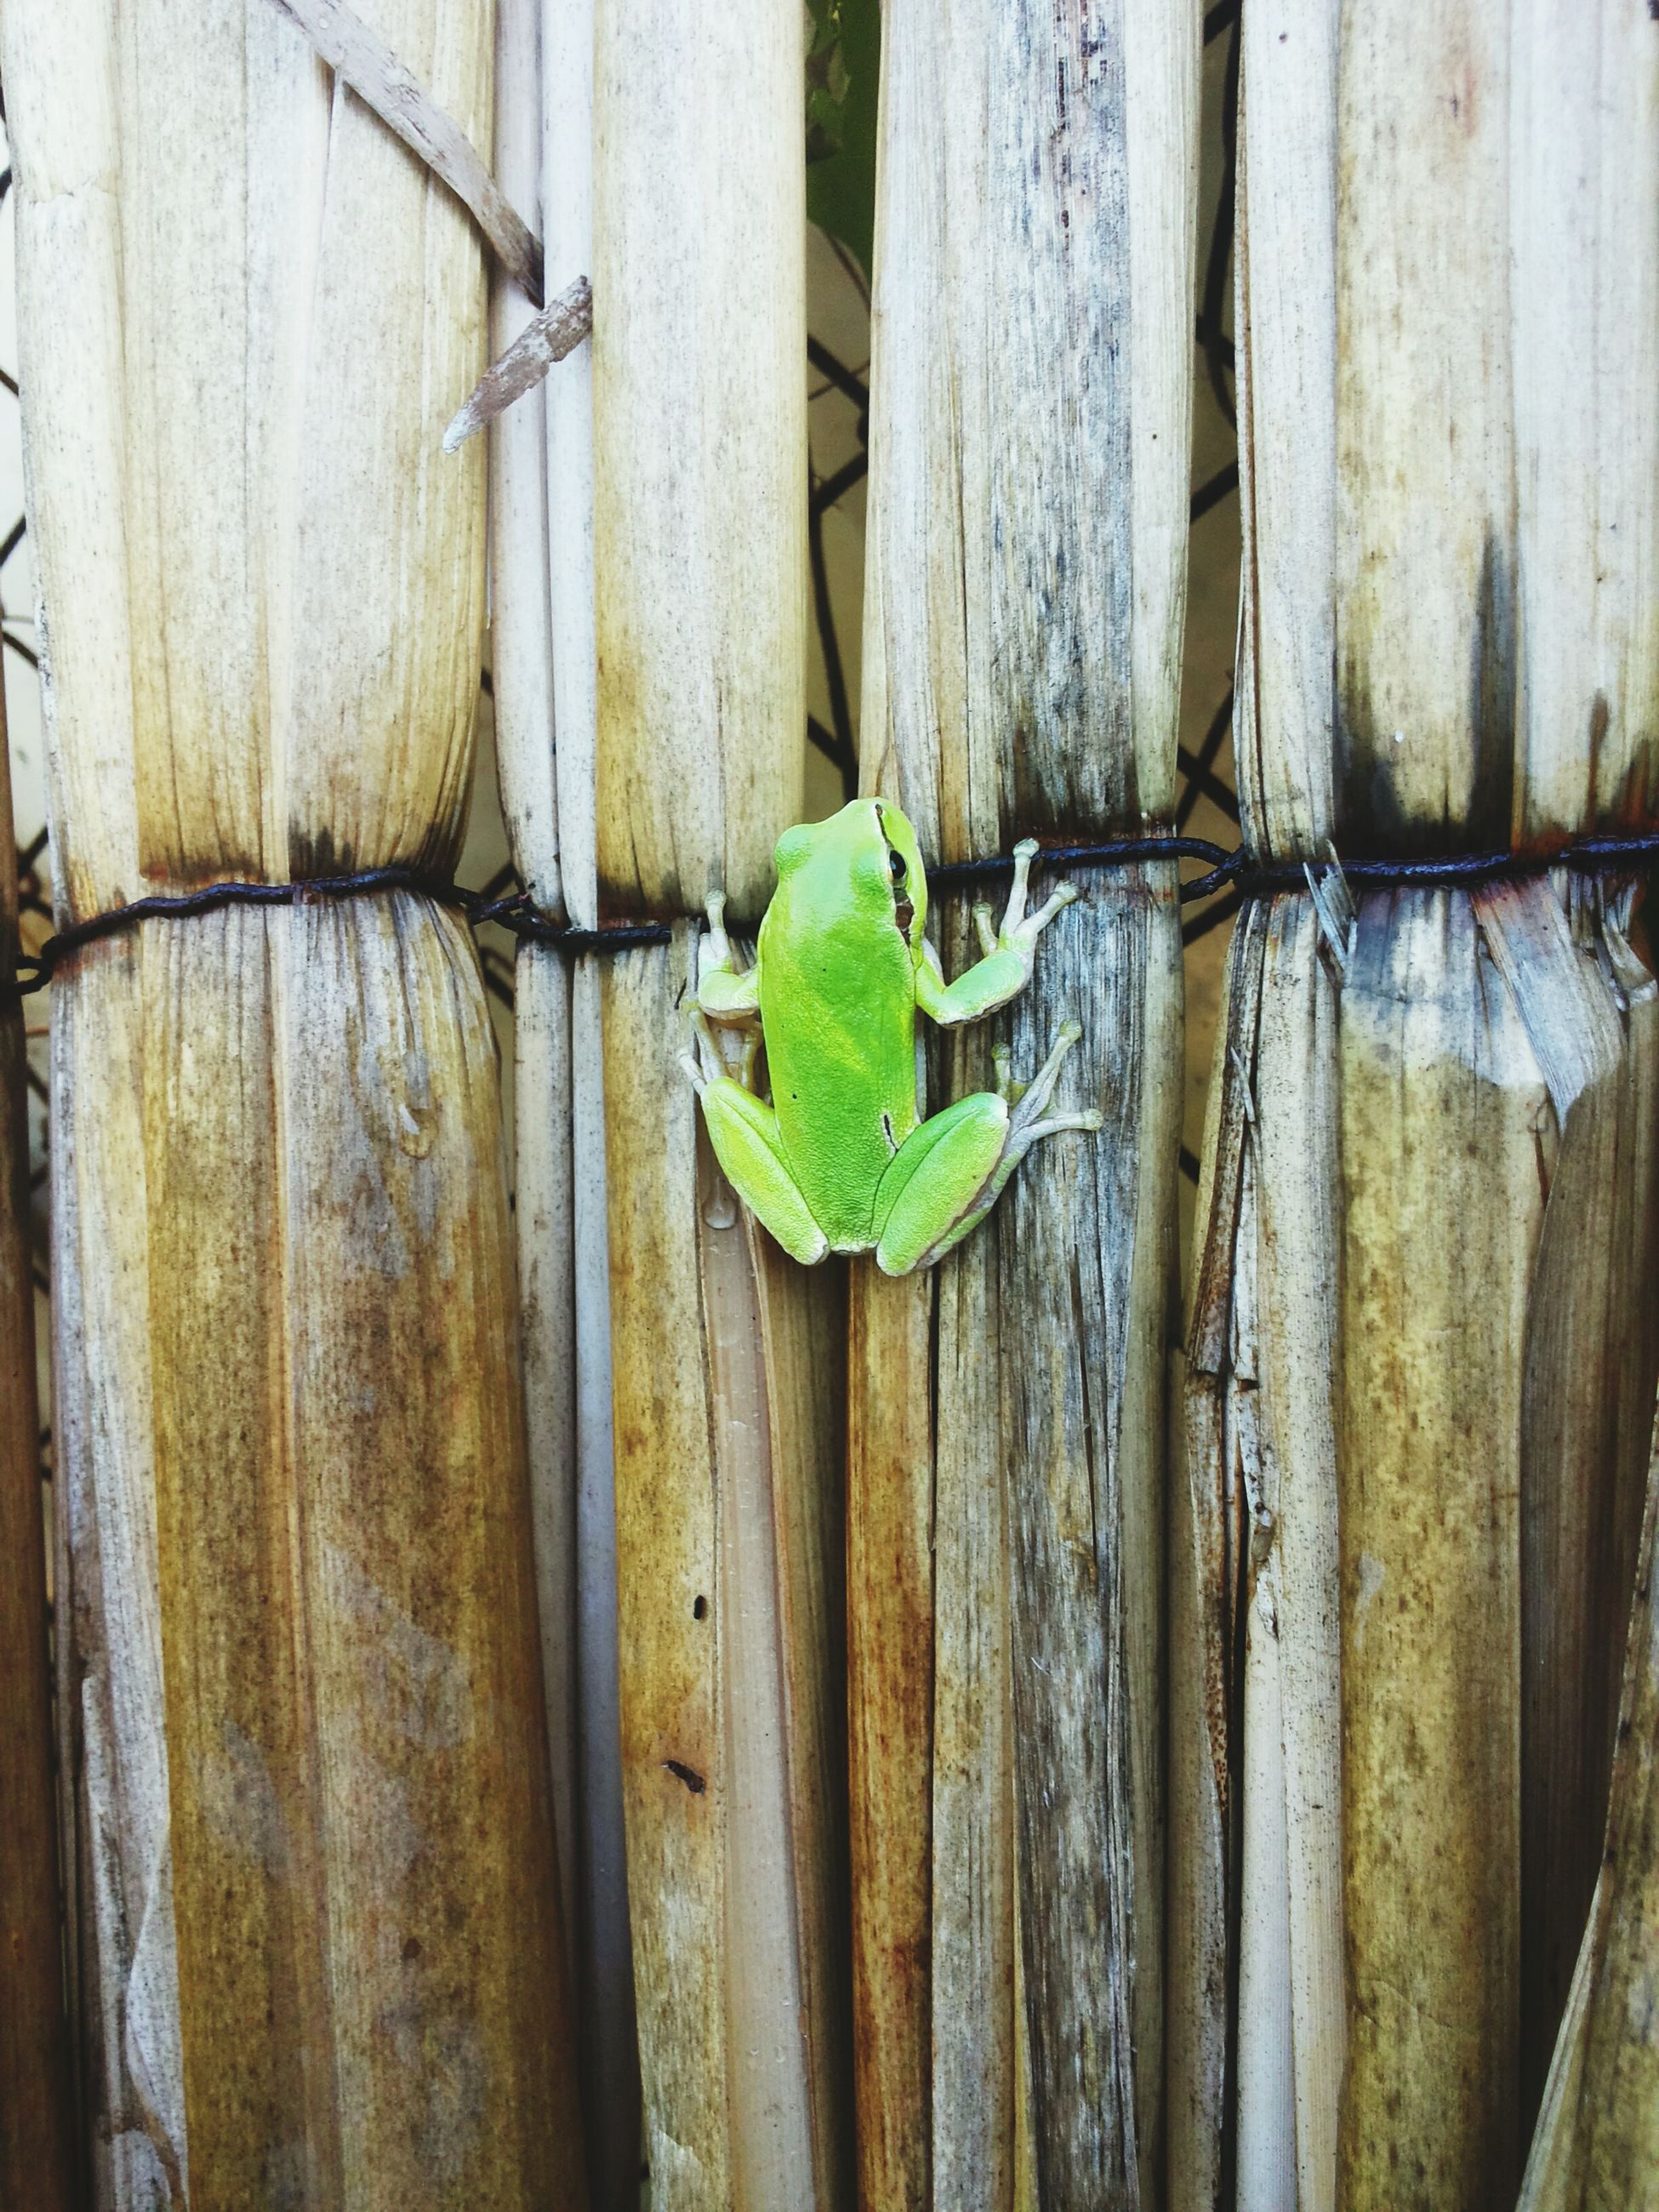 wall - building feature, close-up, green color, wall, built structure, wood - material, architecture, textured, growth, weathered, plant, wooden, old, day, no people, leaf, outdoors, building exterior, pattern, fence